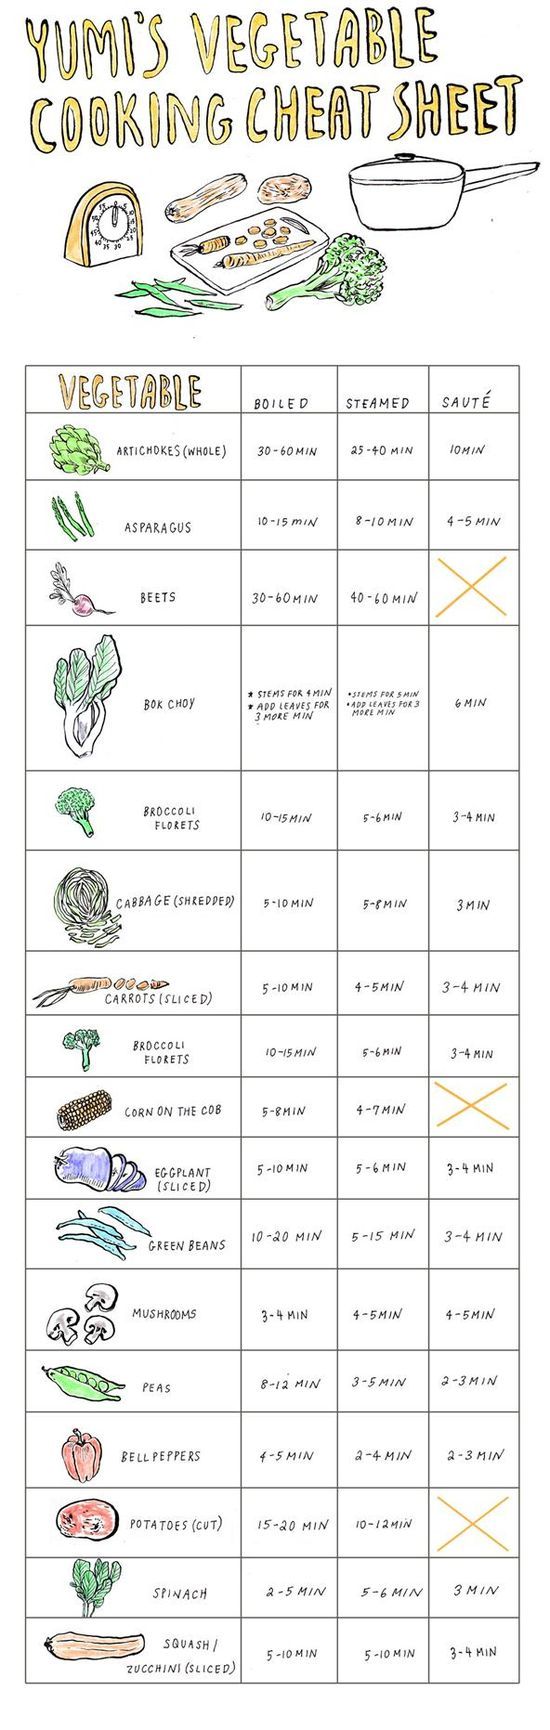 SO great! yumi's vegetable cooking cheat sheet.